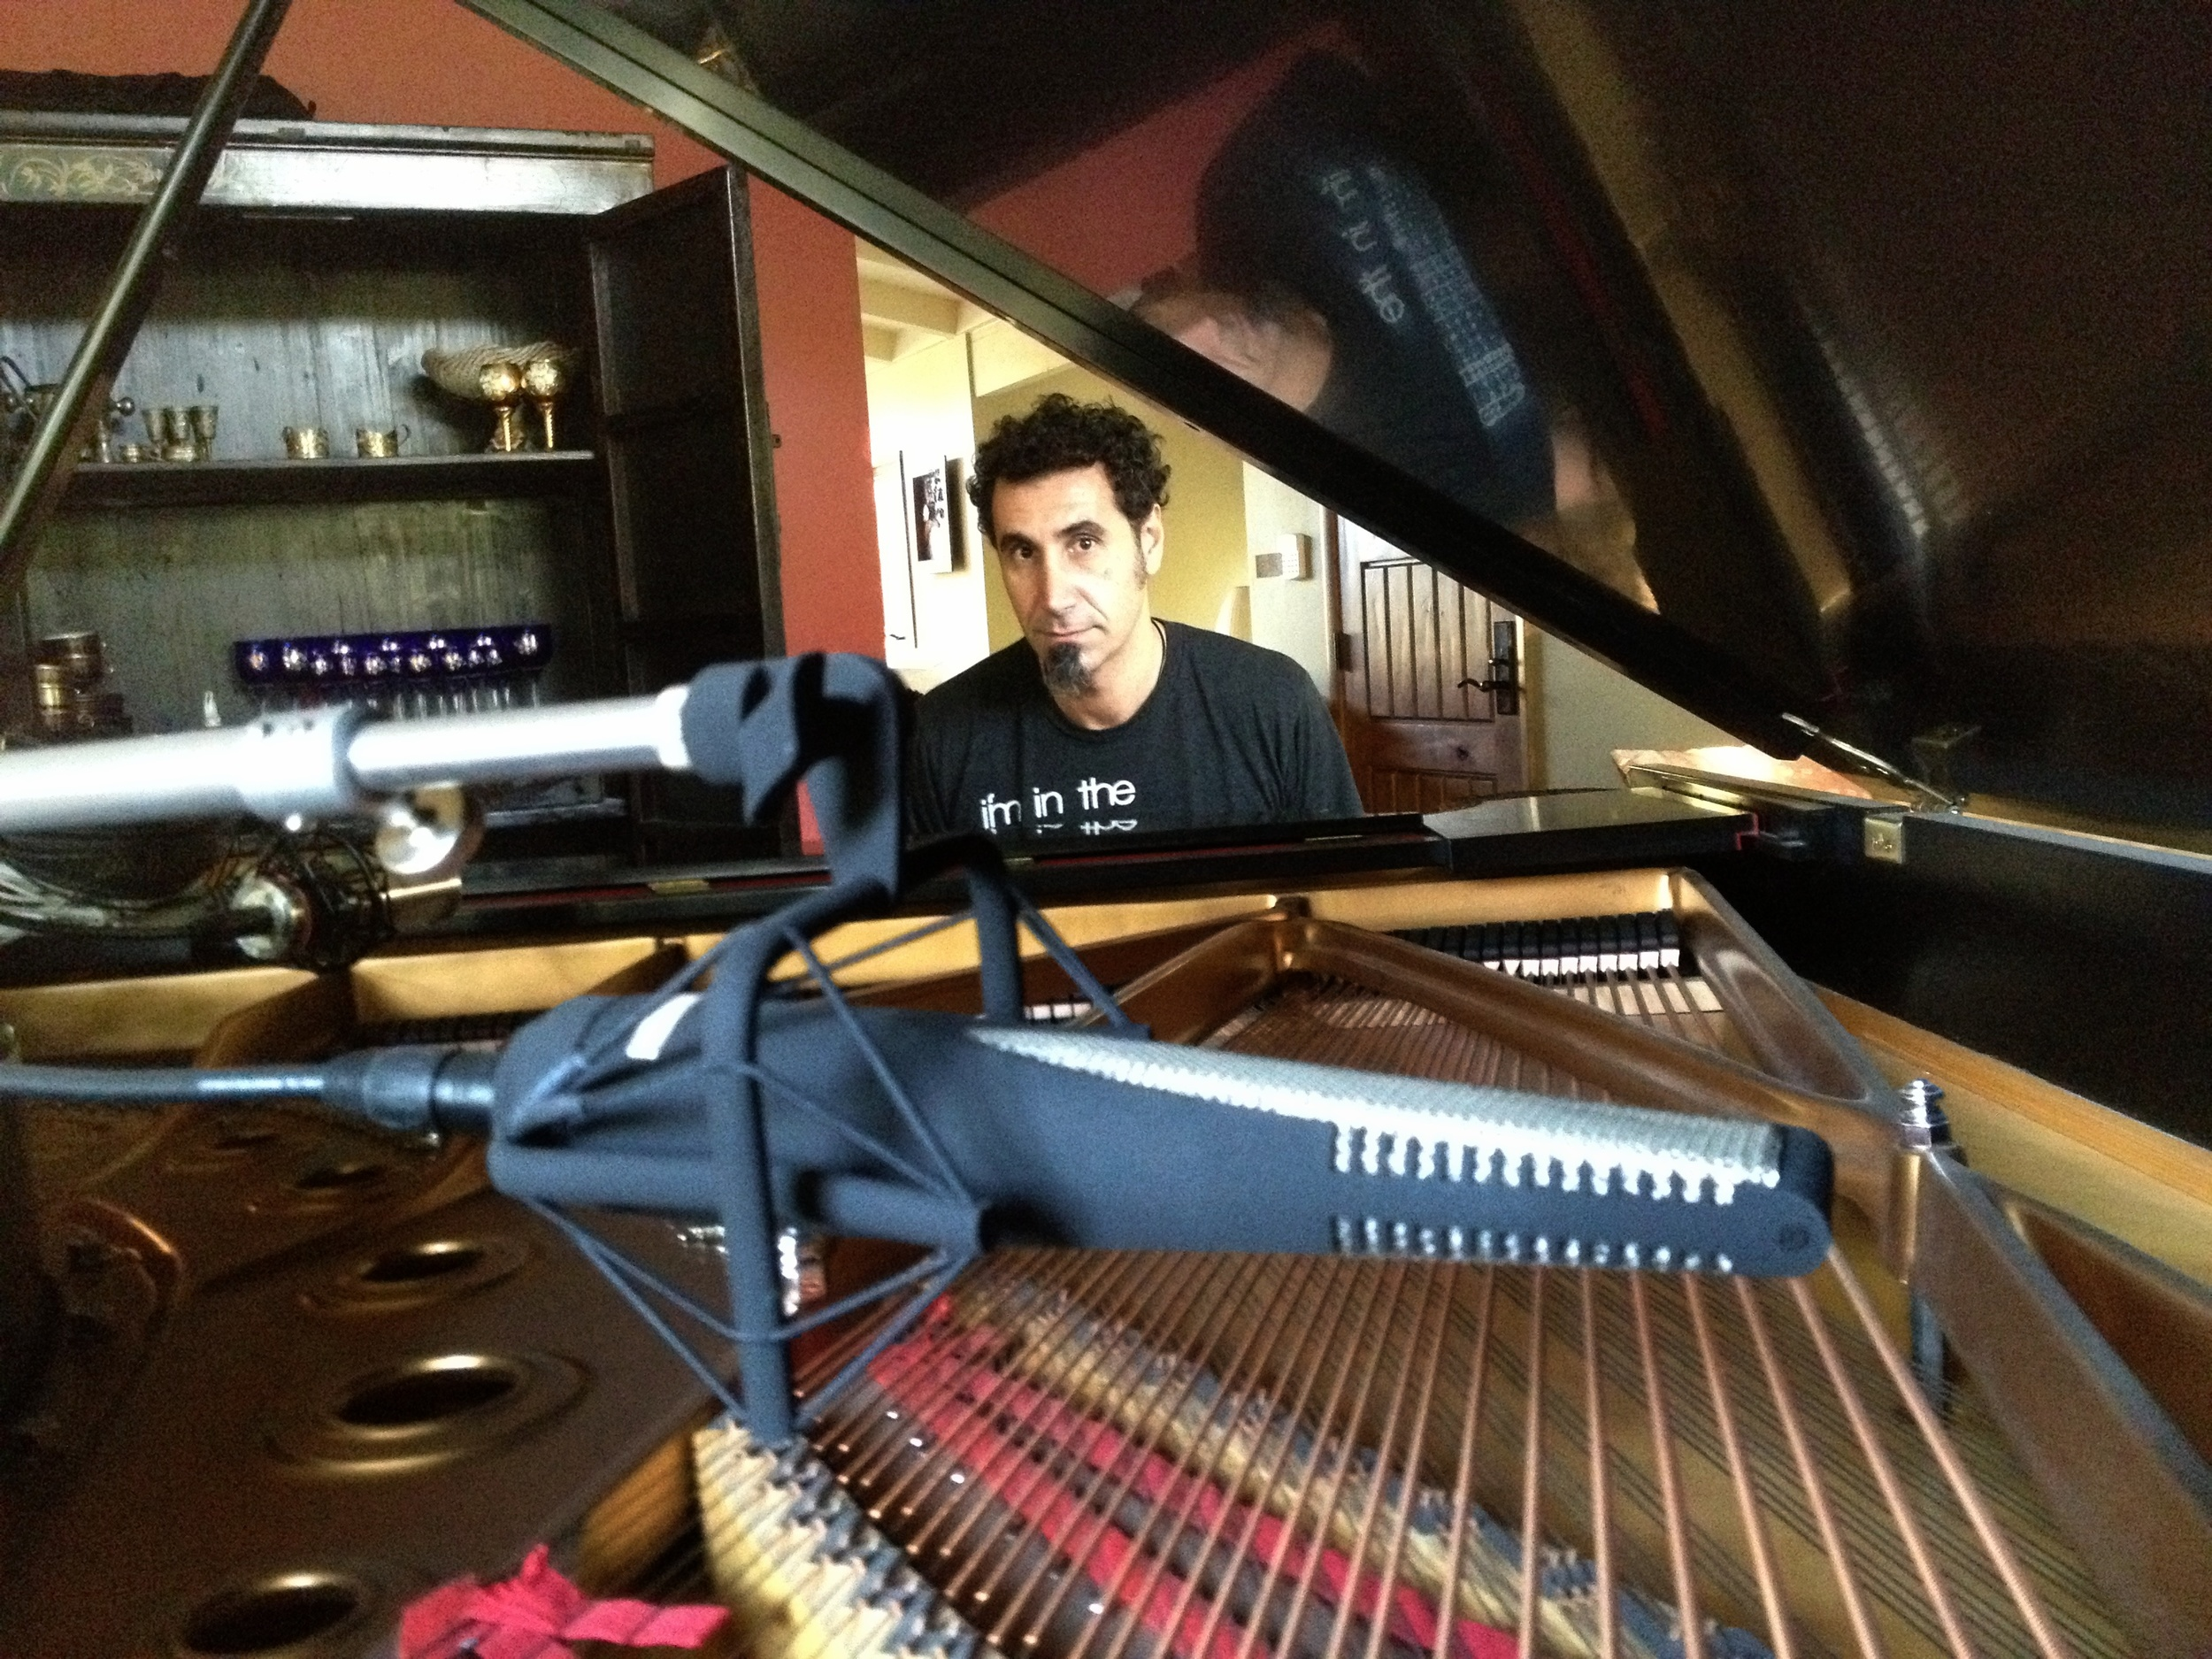 Serj Tankian (System of a Down) with his RNR1 on piano.